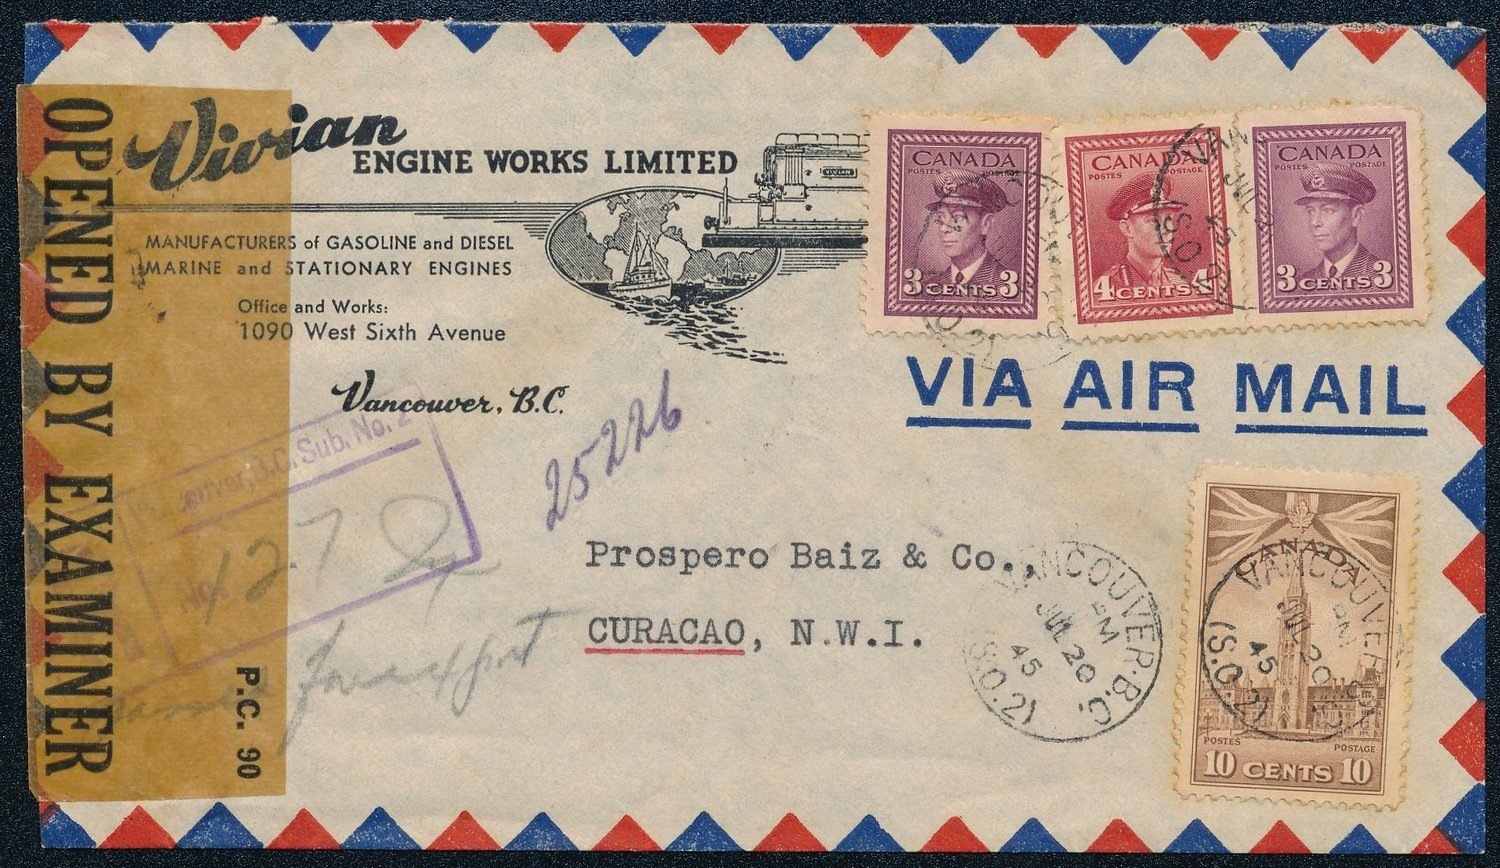 CANADA censored airmail cover 1945 to Curaçao